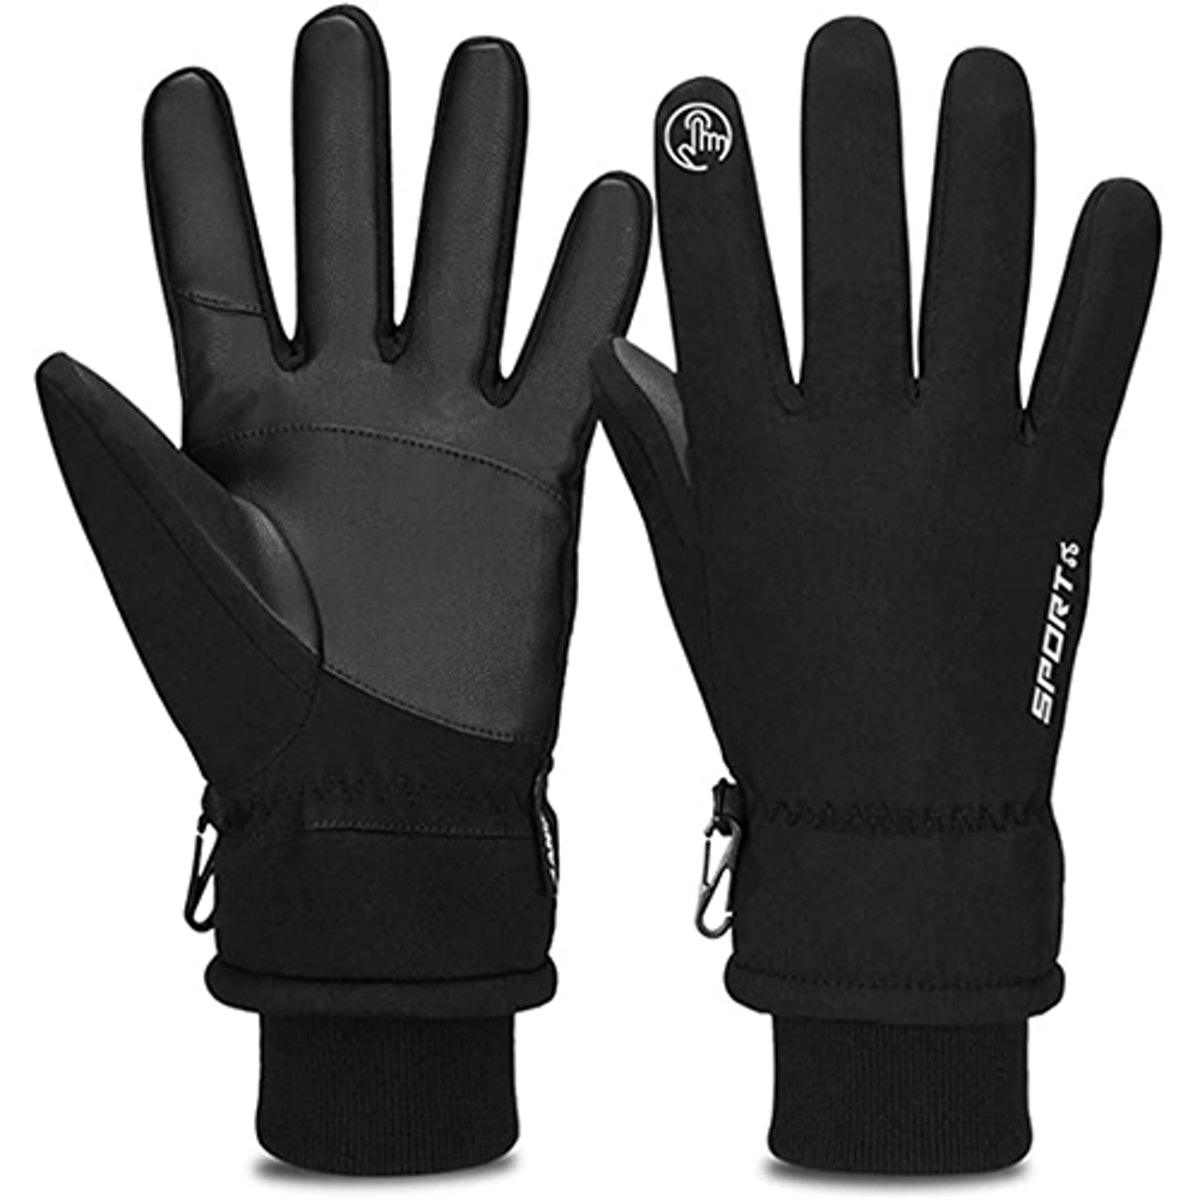 Cevapro -30℉ Touchscreen Thermal Gloves